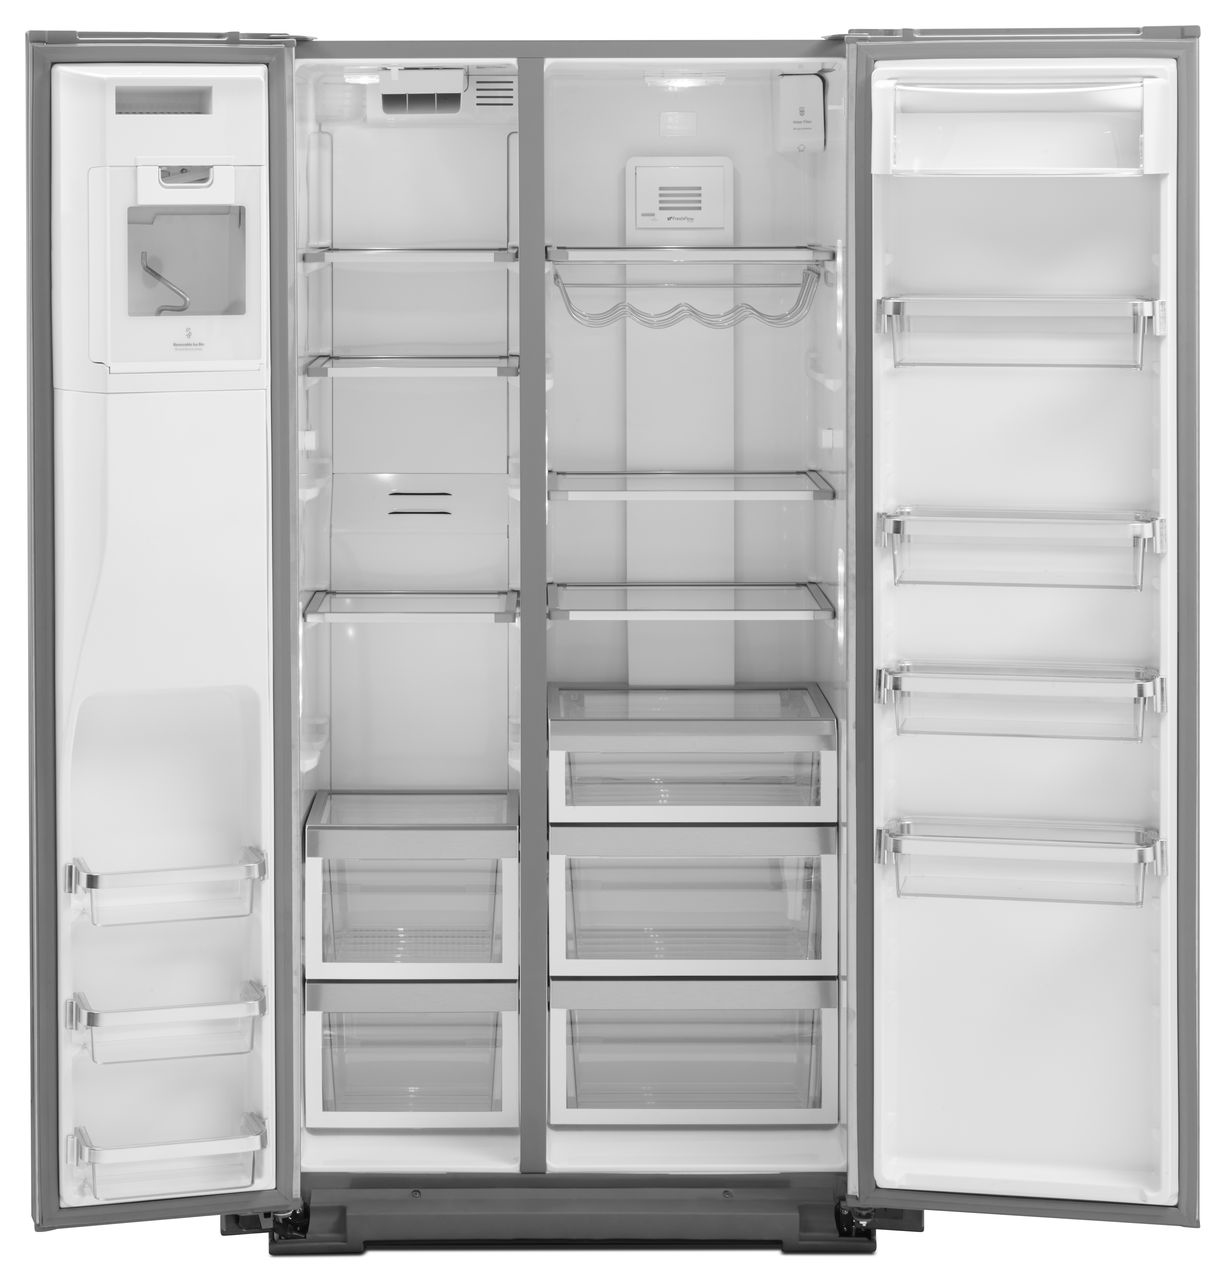 Kitchenaid Refrigerator Side By Side kitchenaid sideside refrigerator - krsc503ess